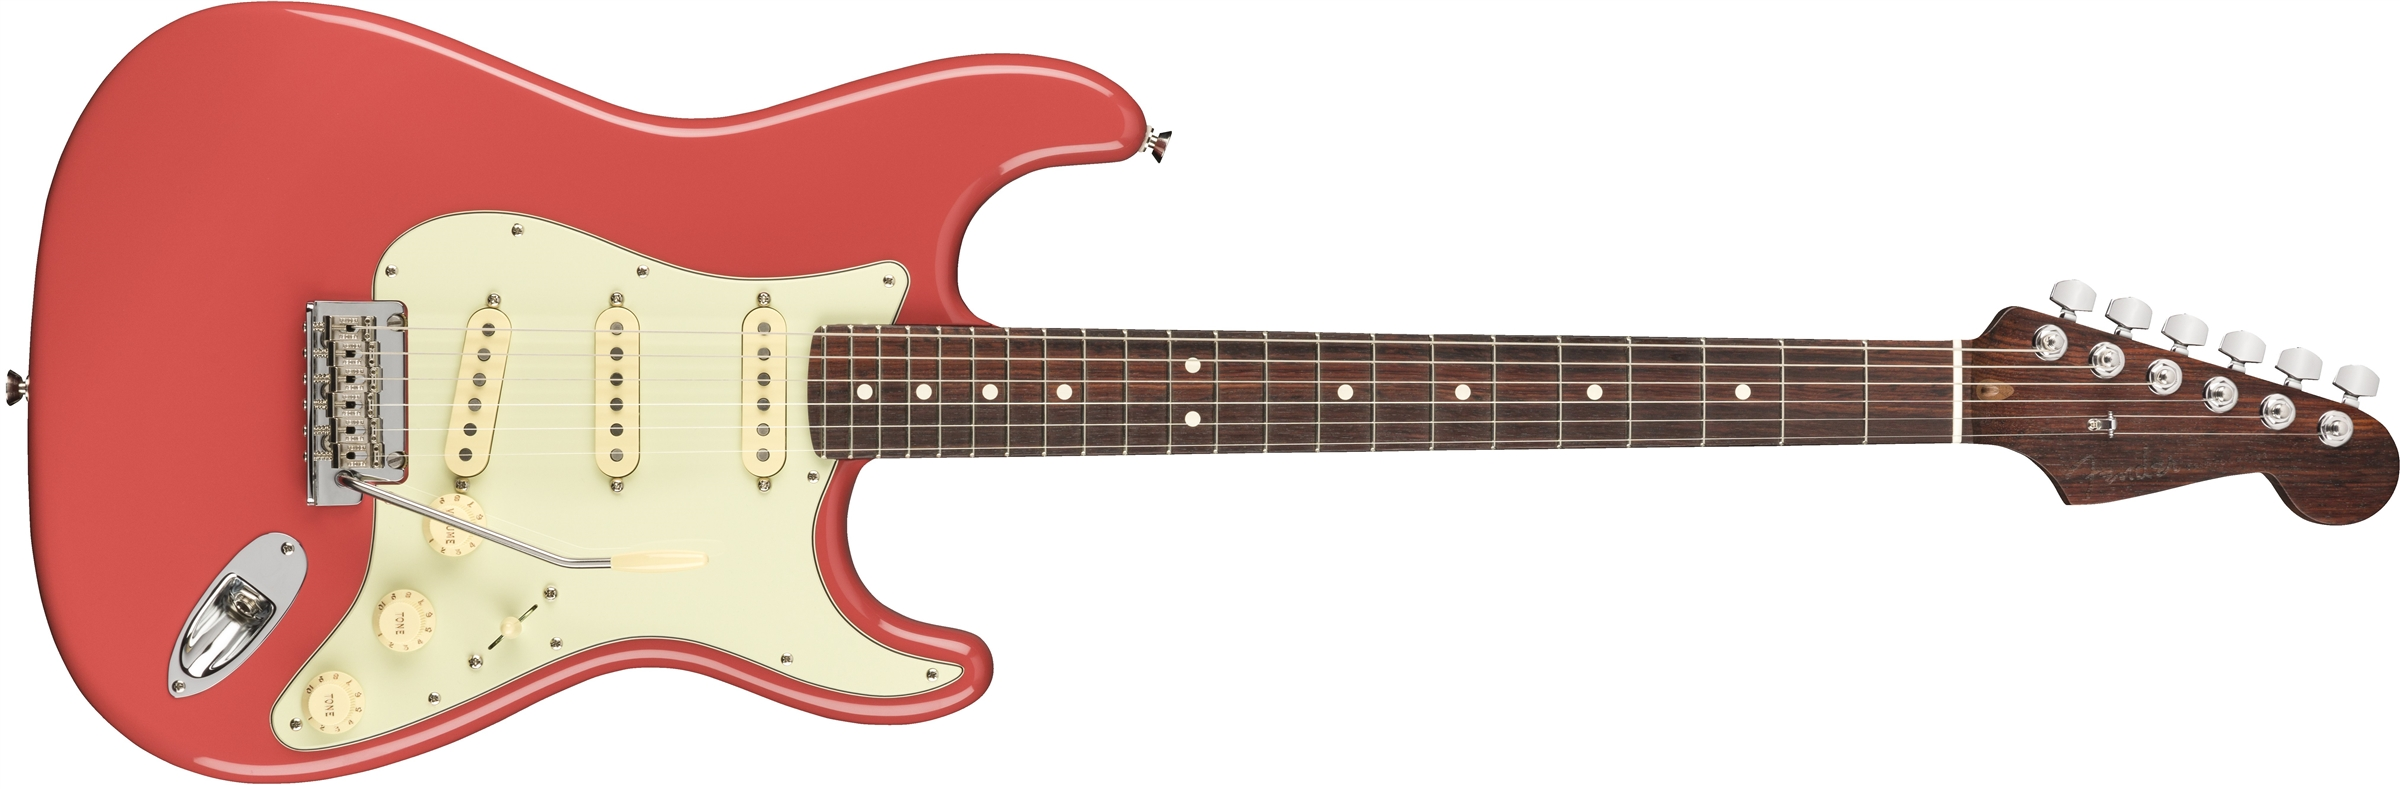 FENDER-2019-Limited-Edition-American-Professional-Stratocaster-Solid-Rosewood-Neck-Fiesta-Red-0171111740-sku-24022